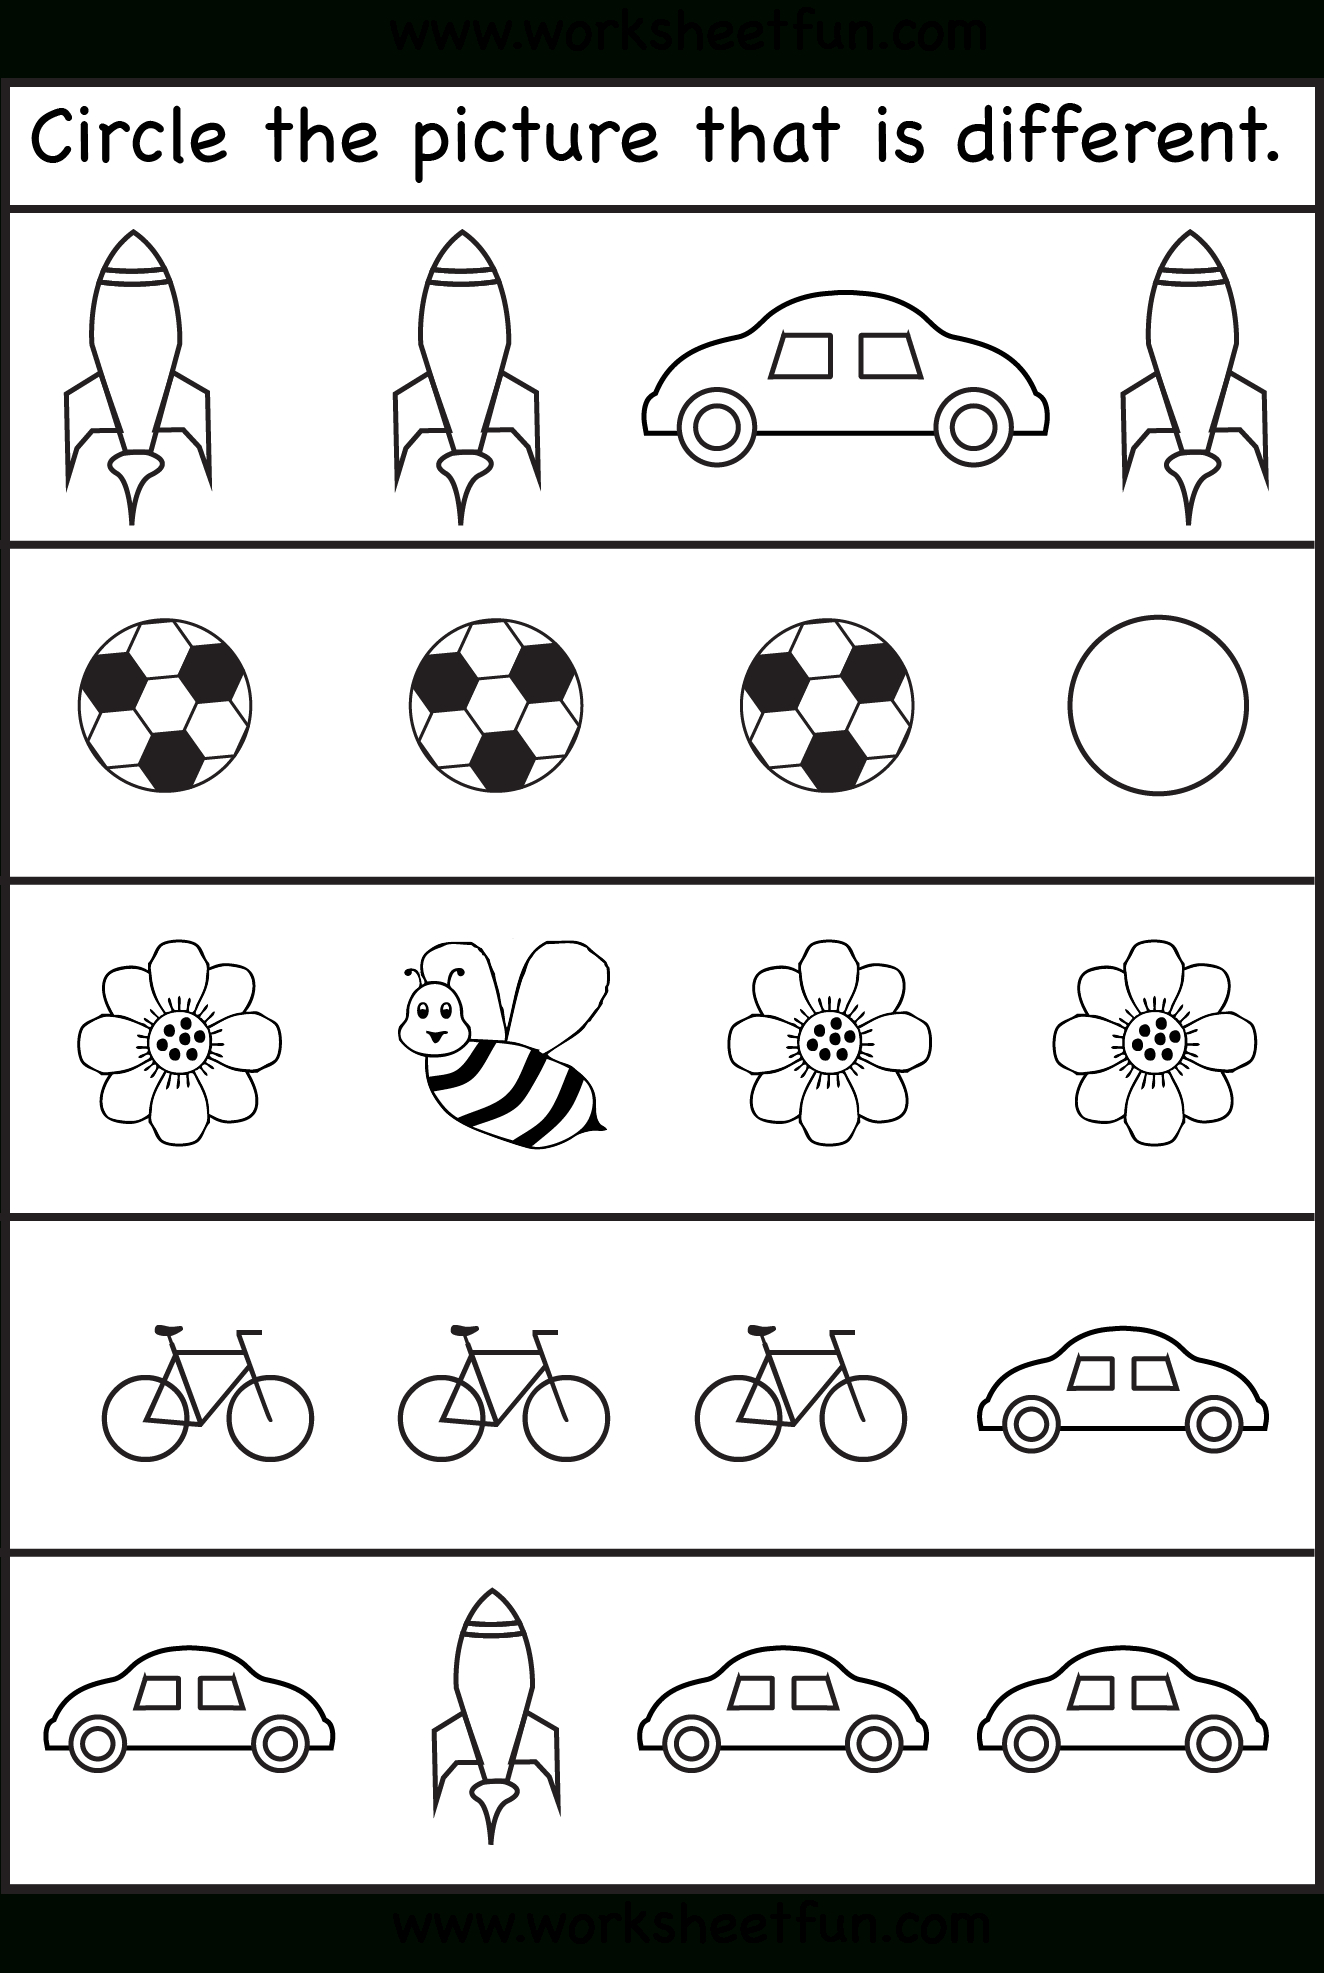 Same Or Different Worksheets For Toddler | Kids Worksheets Printable | Kindergarten Worksheets Printable Activities